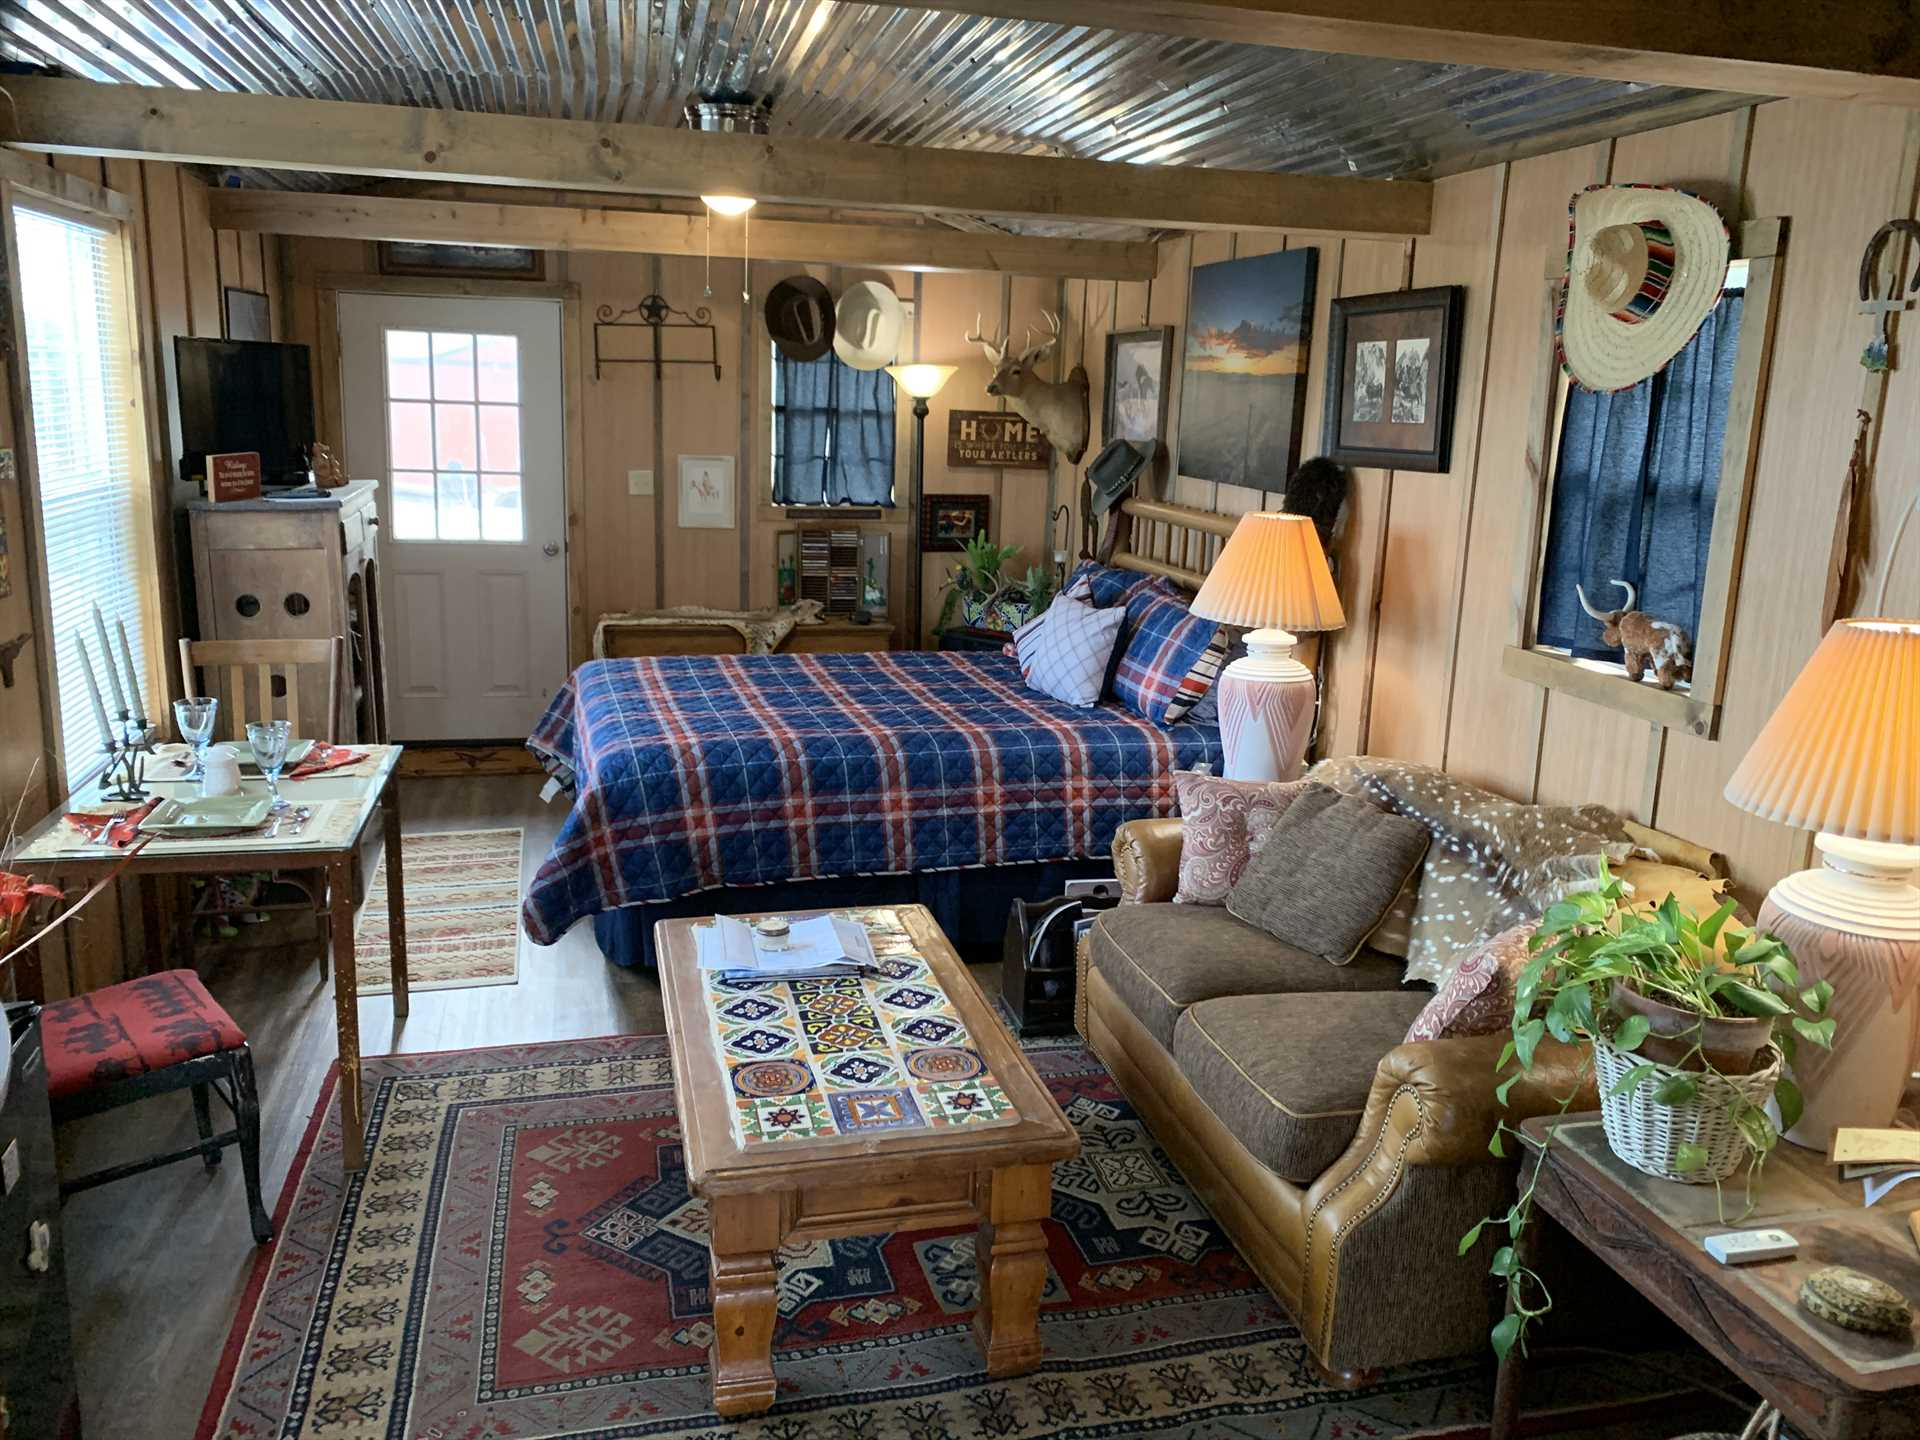 Cozy, eclectic, and flooded with natural light, the cabin sets the stage for an incredible romantic getaway!